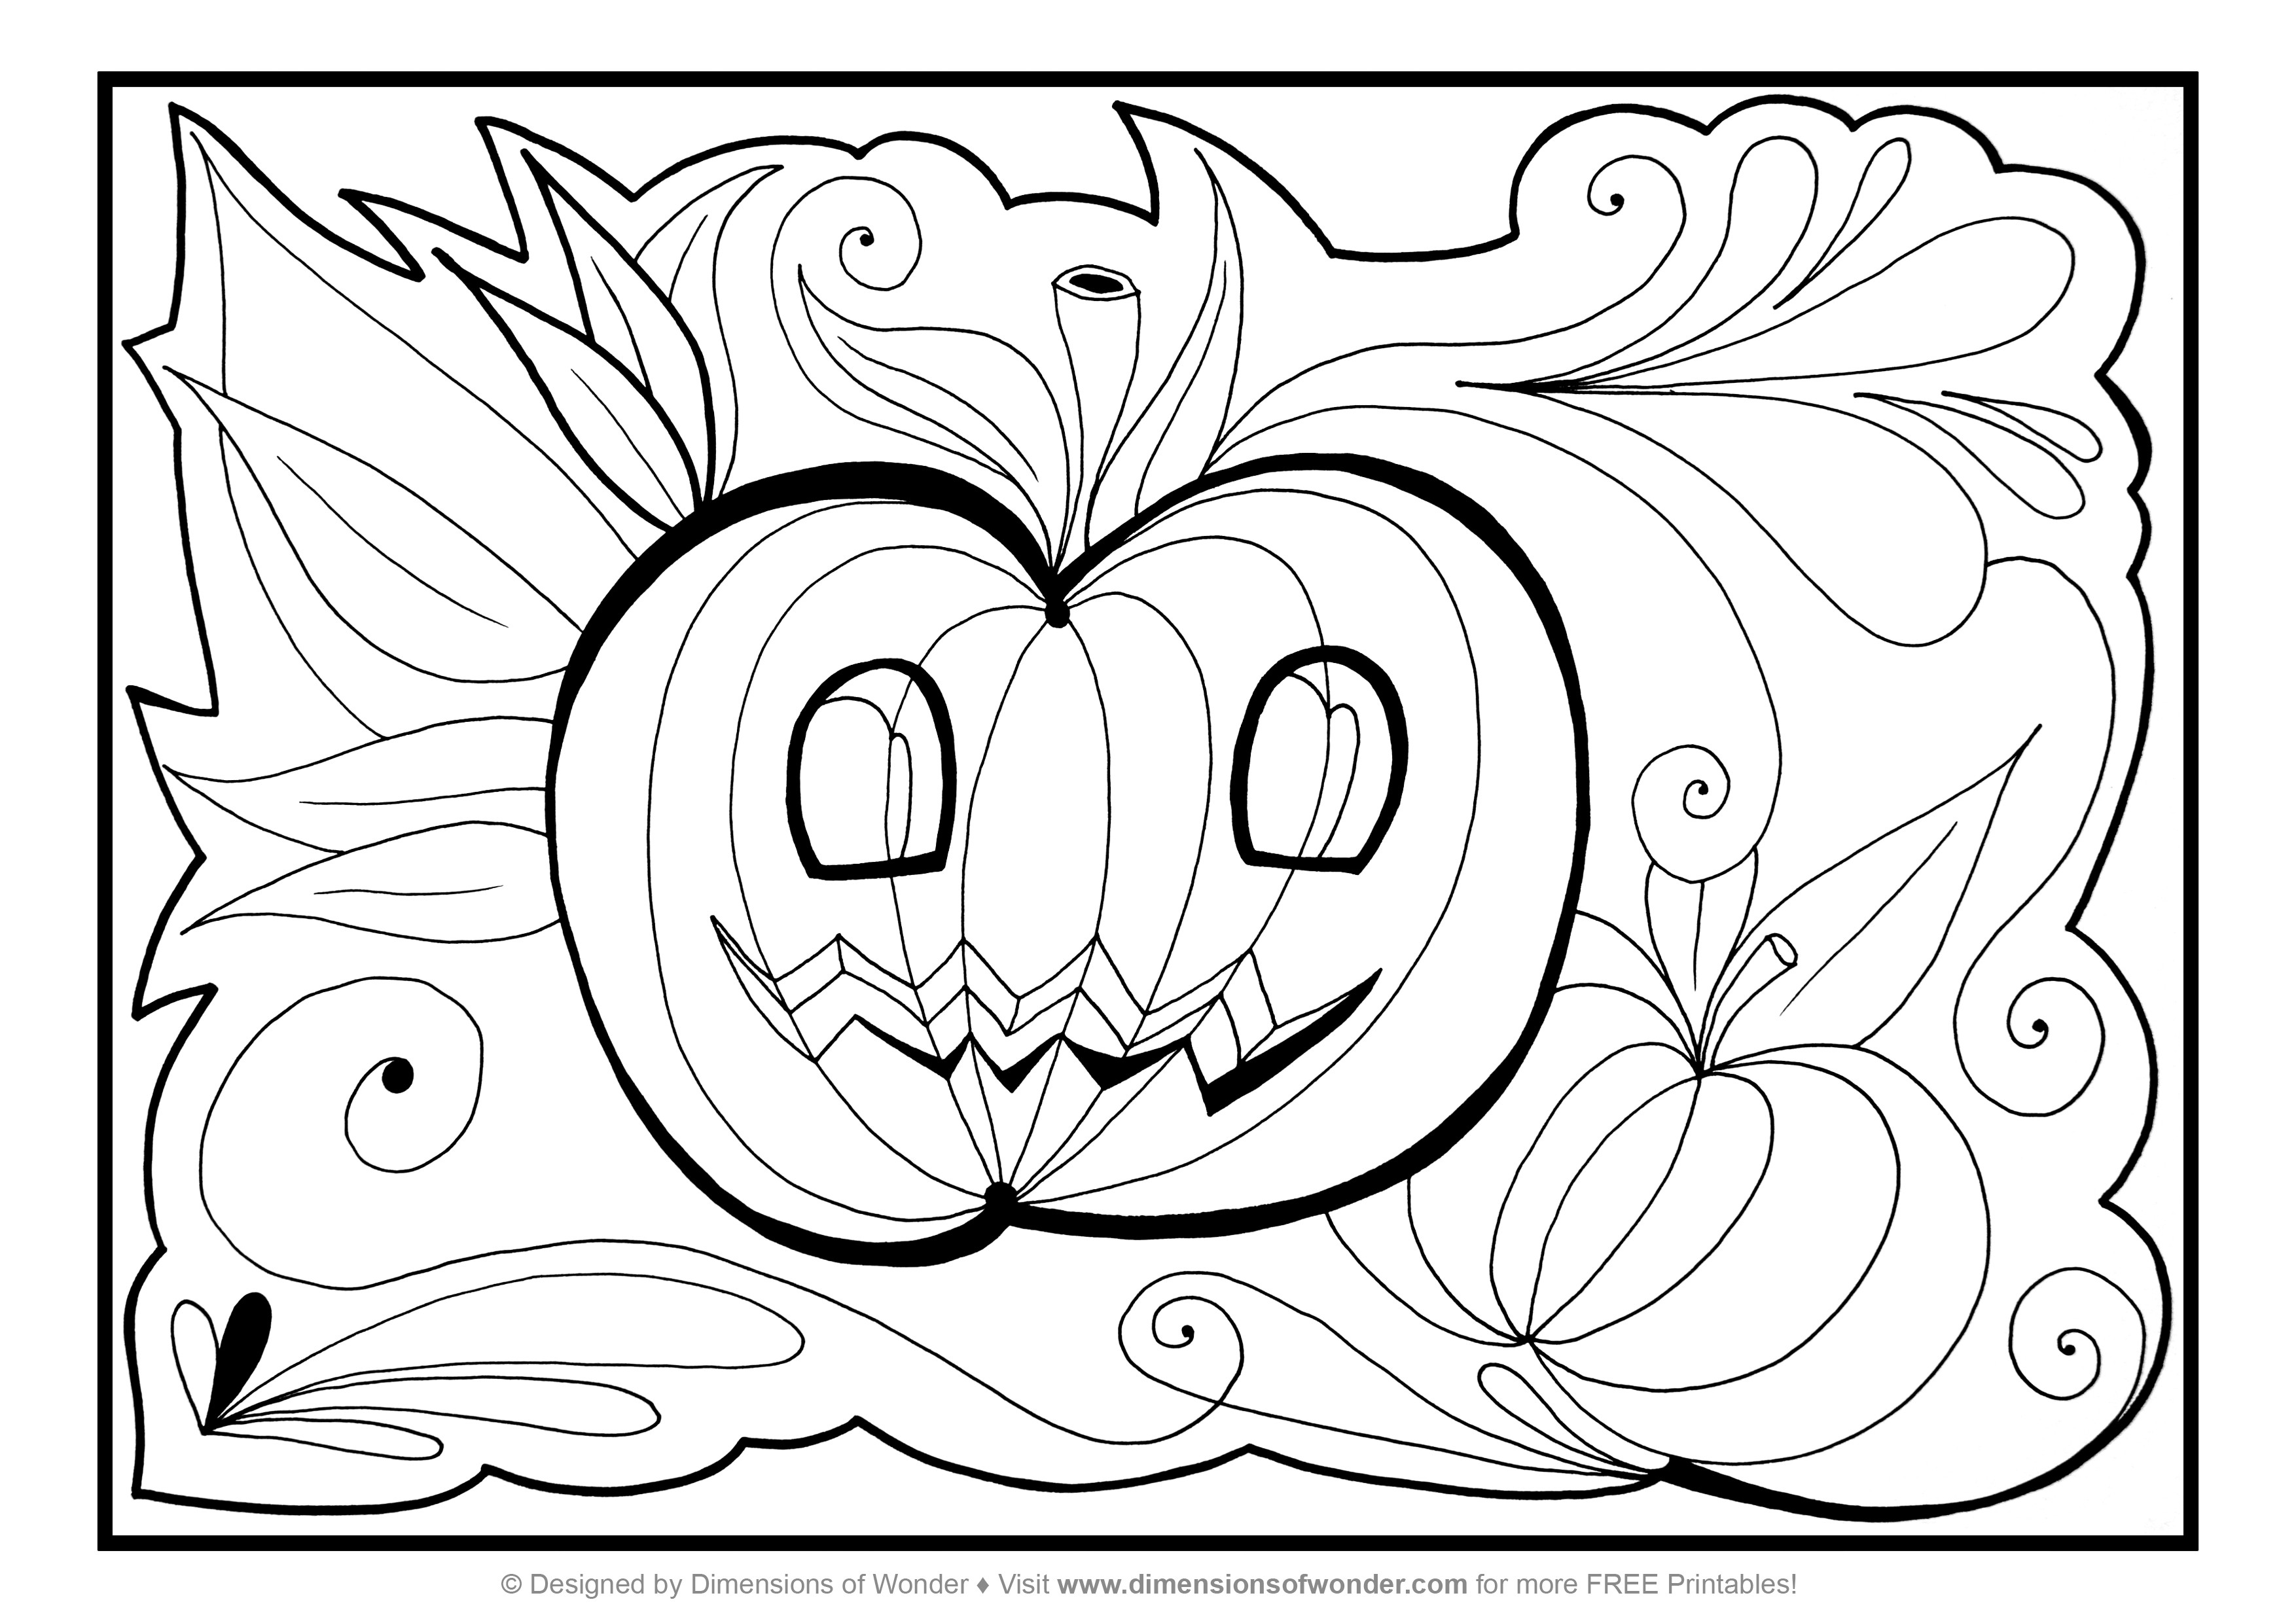 Printable Coloring Pages For Older Kids  New Free Printable Halloween Coloring Pages for Older Kids